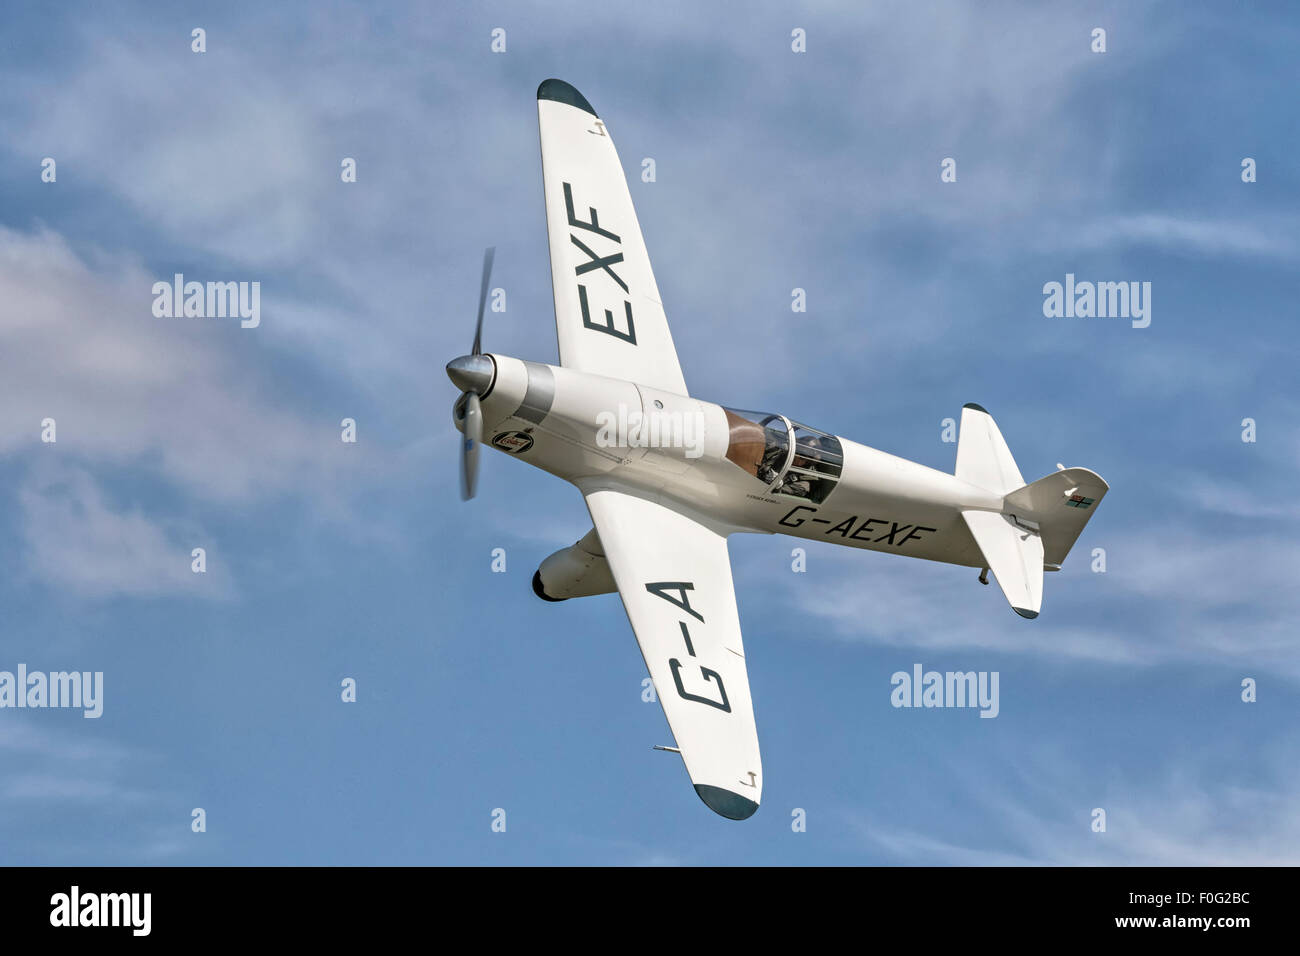 Percival Mew Gull - classic vintage racing aircraft - Stock Image